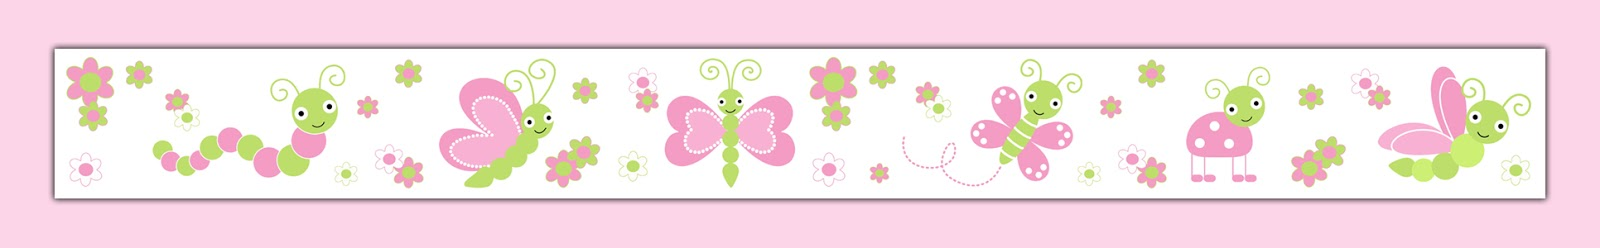 decamp studios butterfly ladybug dragonfly pink green wallpaper